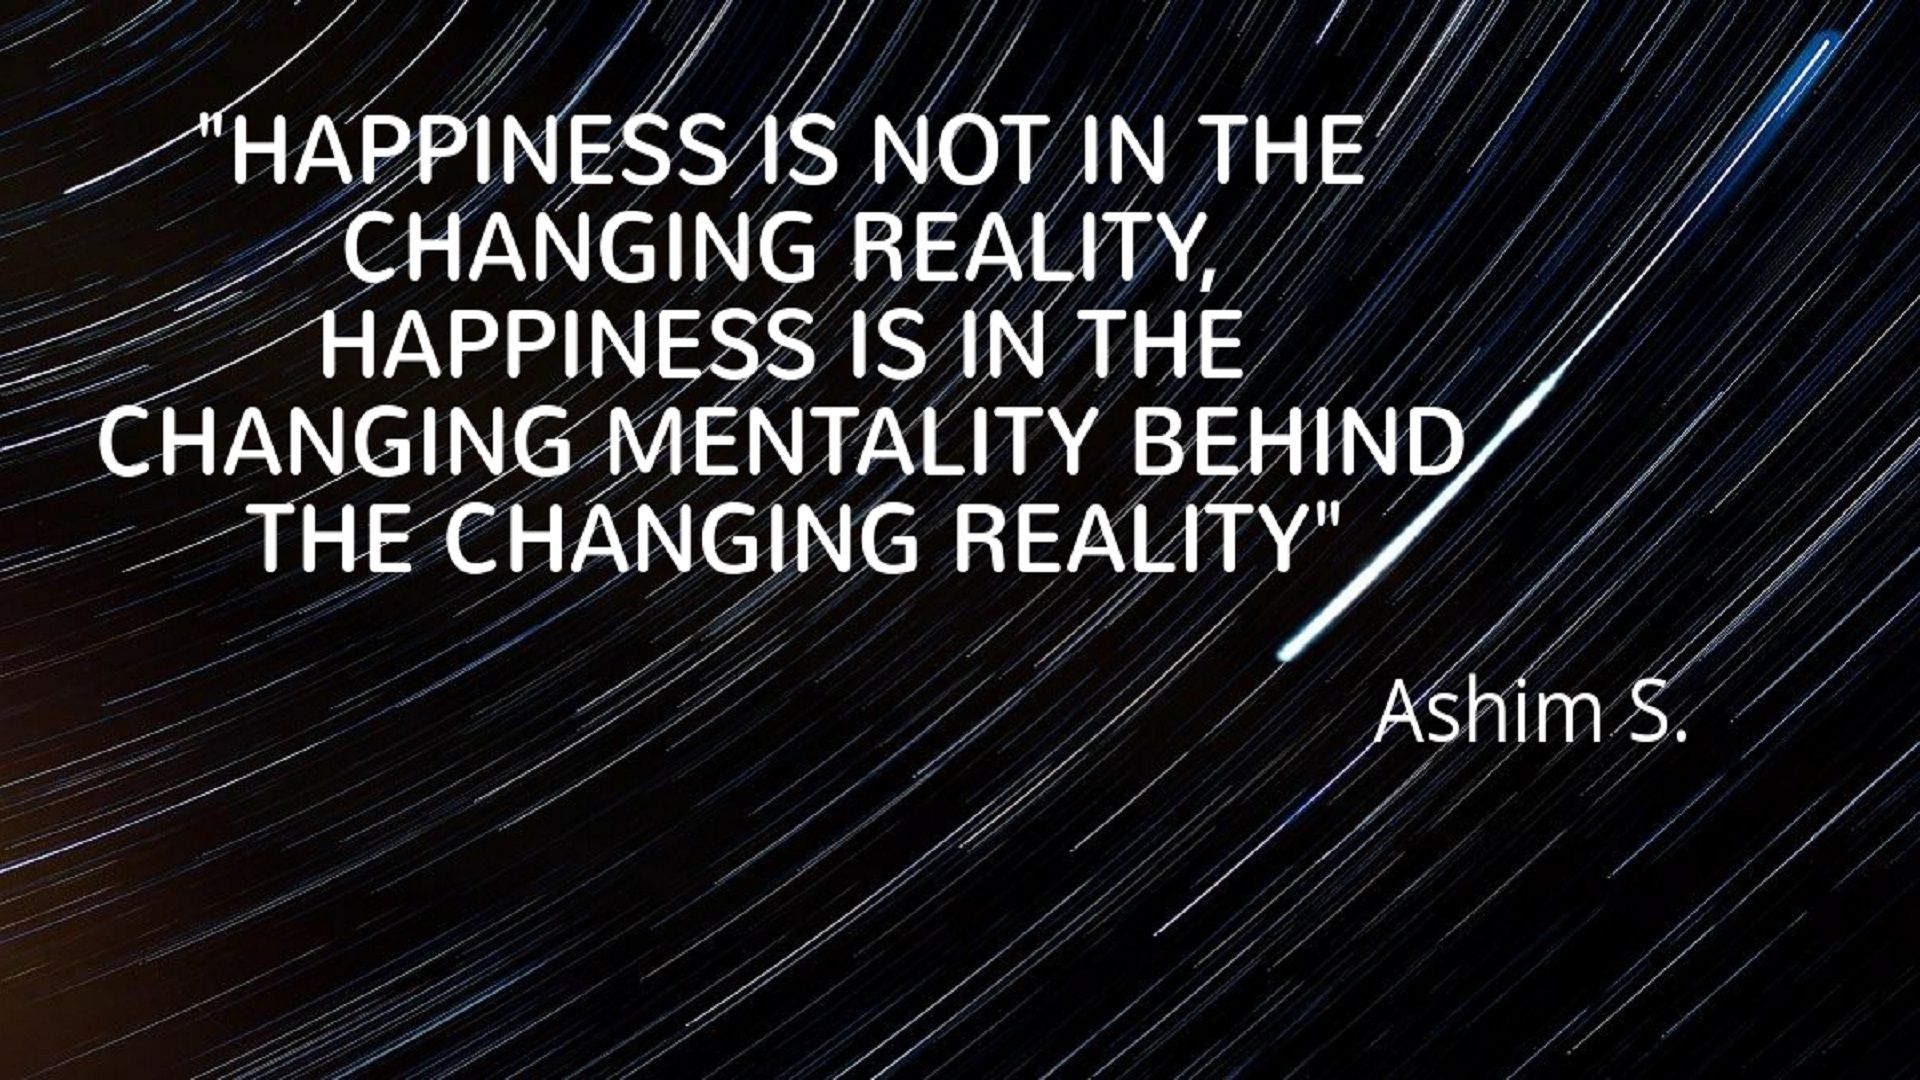 """Happiness is NOT in the Changing Reality, Happiness is in the Changing Mentality Behind the Changing Reality"" – Ashim S. [1920 X 1080]"